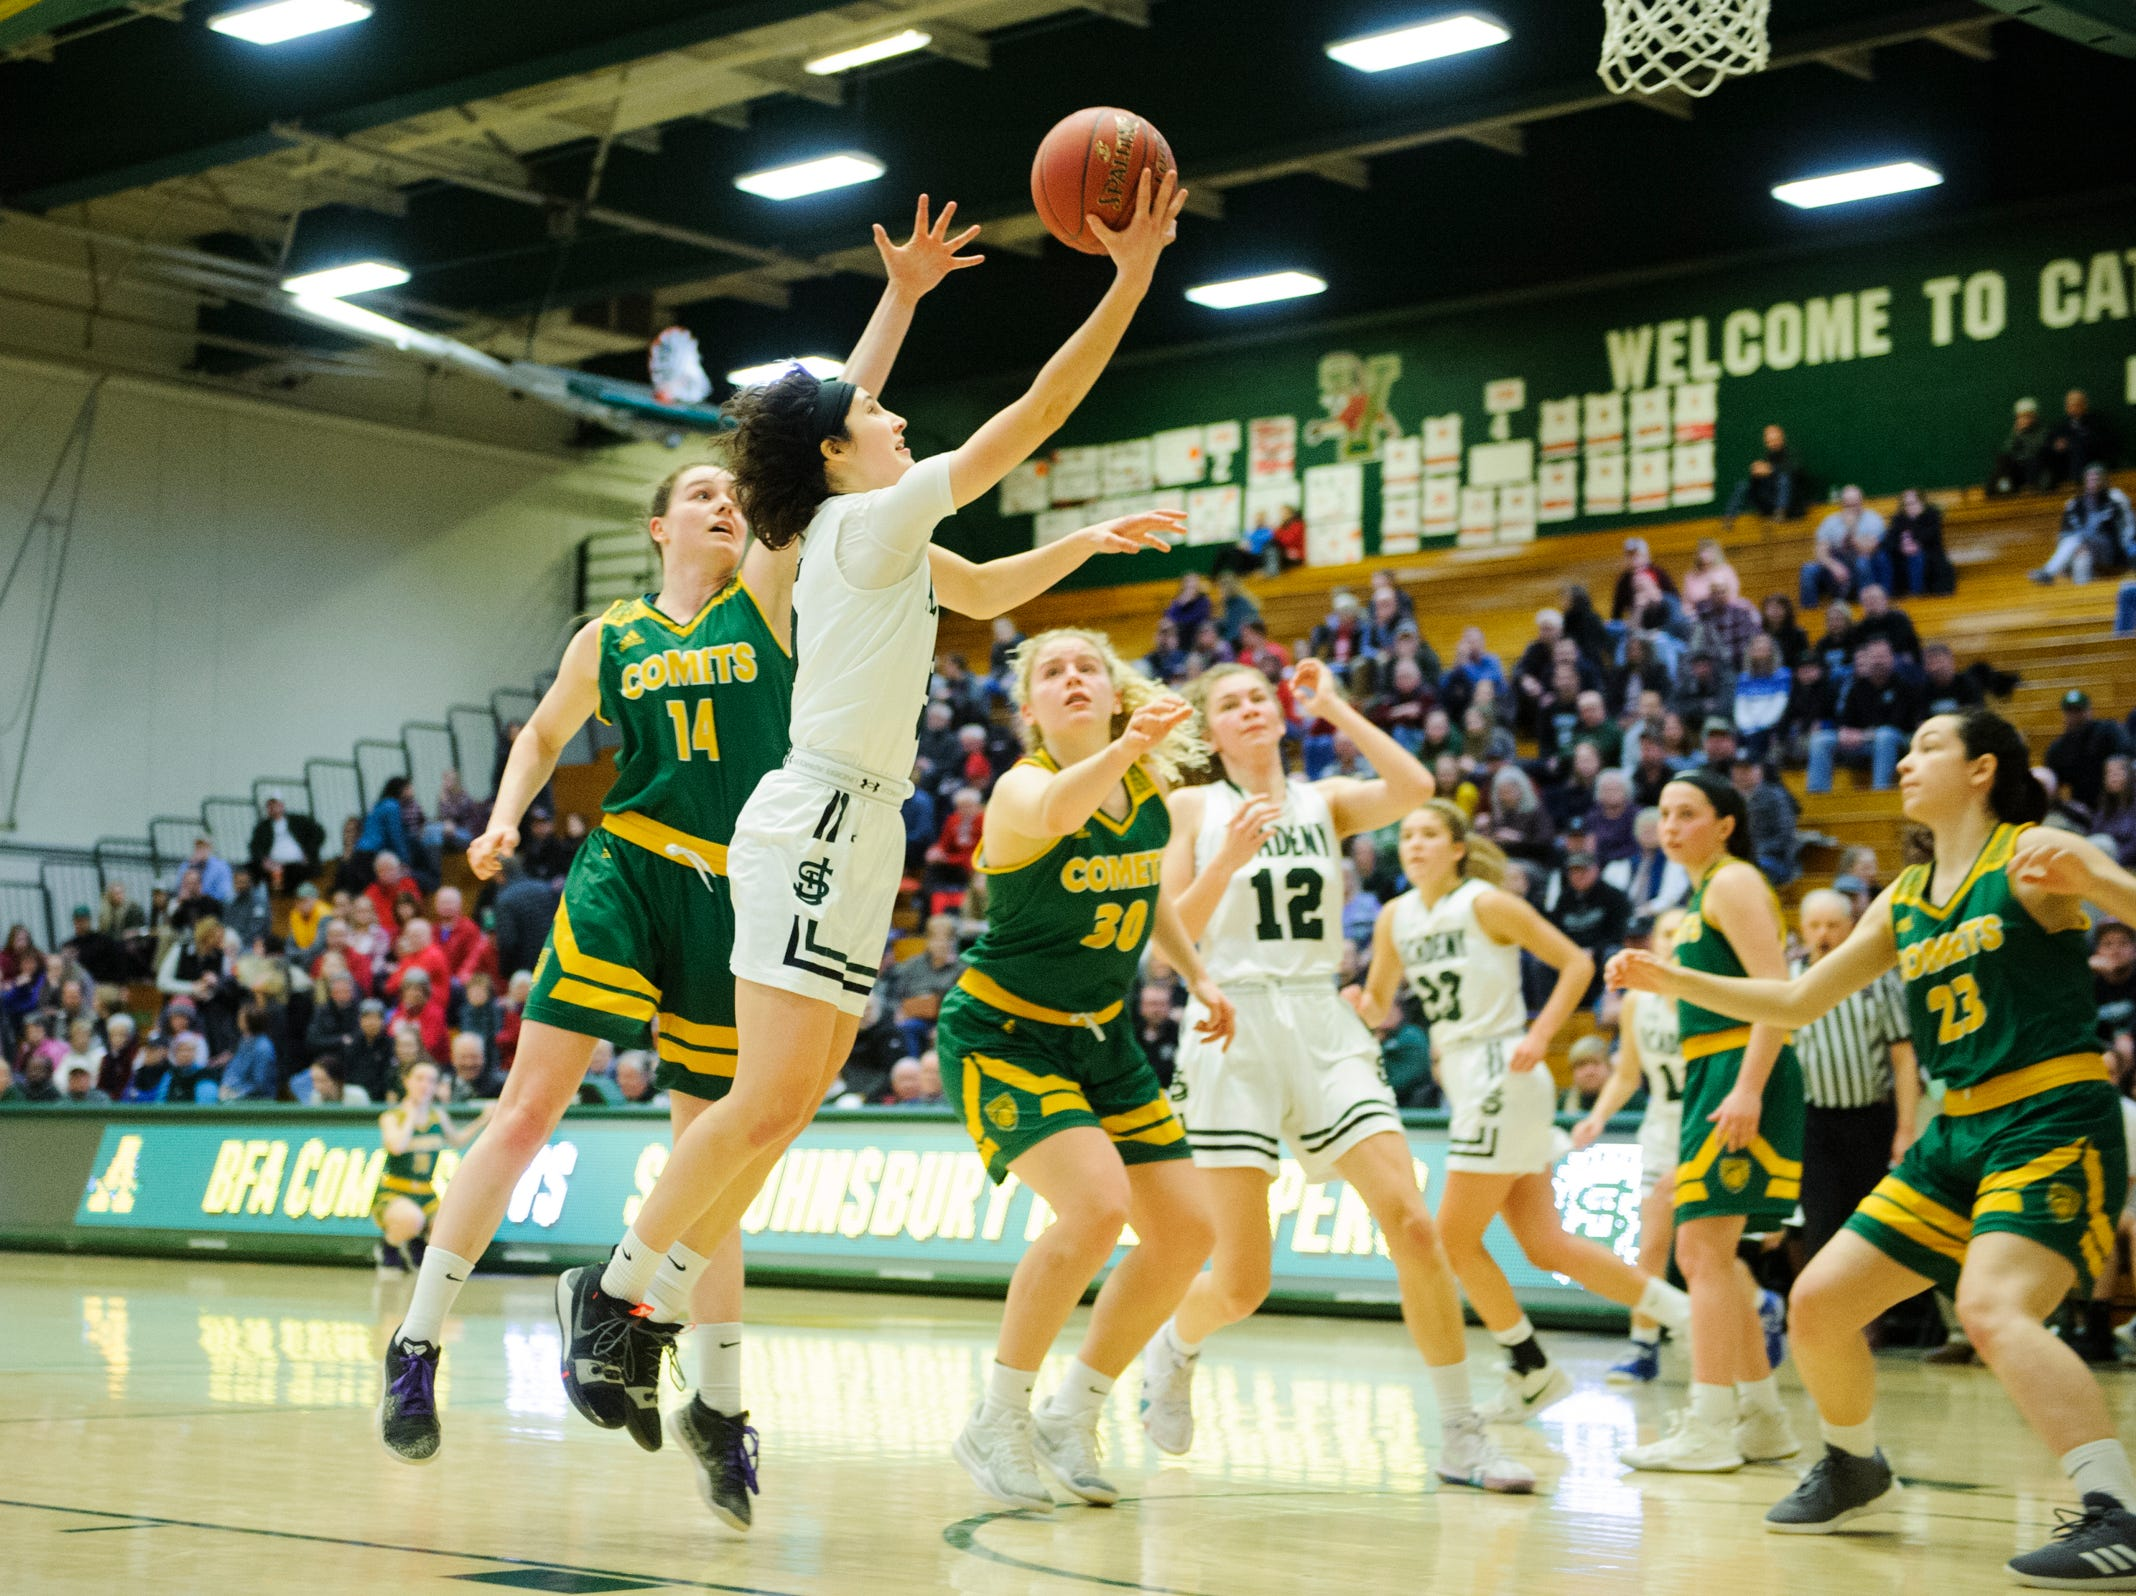 St. Johnsbury's Sadie Stetson (5) leaps for a lay up during the girls semifinal basketball game between the BFA St. Albans Comets and the St. Johnsbury Hilltoppers at Patrick Gym on Wednesday night March 6, 2019 in Burlington, Vermont.